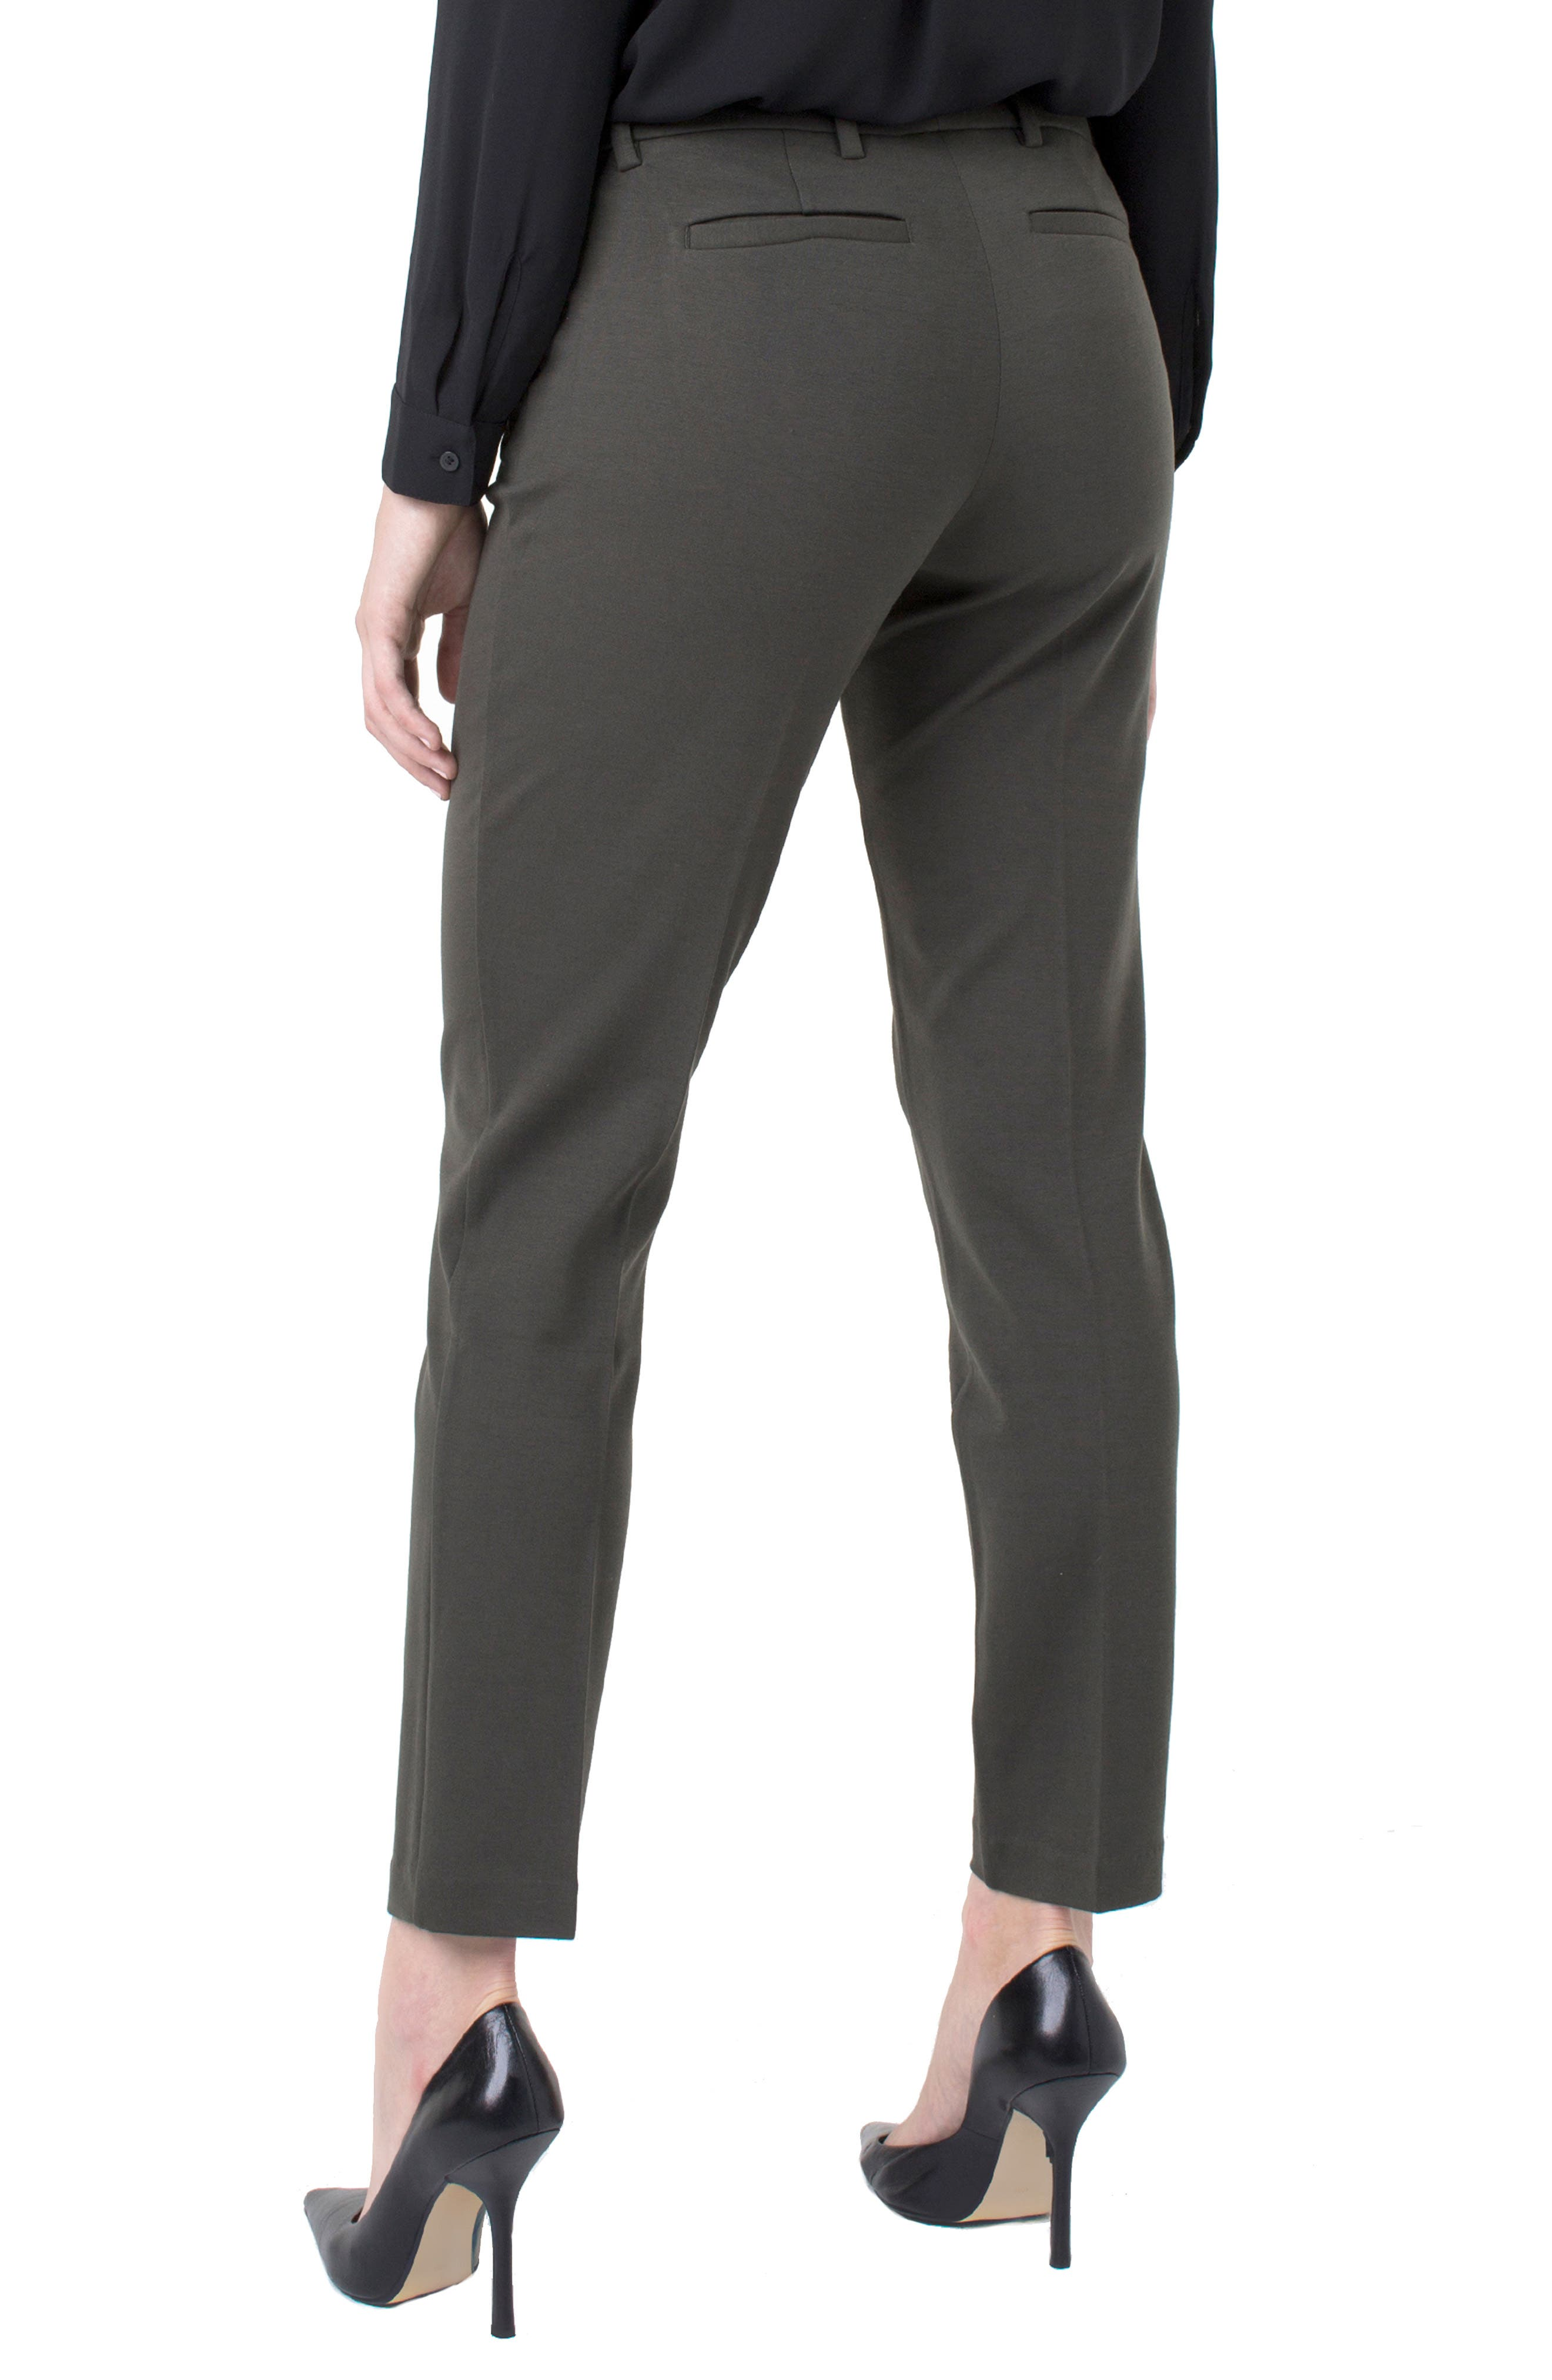 Kelsey Knit Trousers,                             Alternate thumbnail 2, color,                             PEAT GREEN